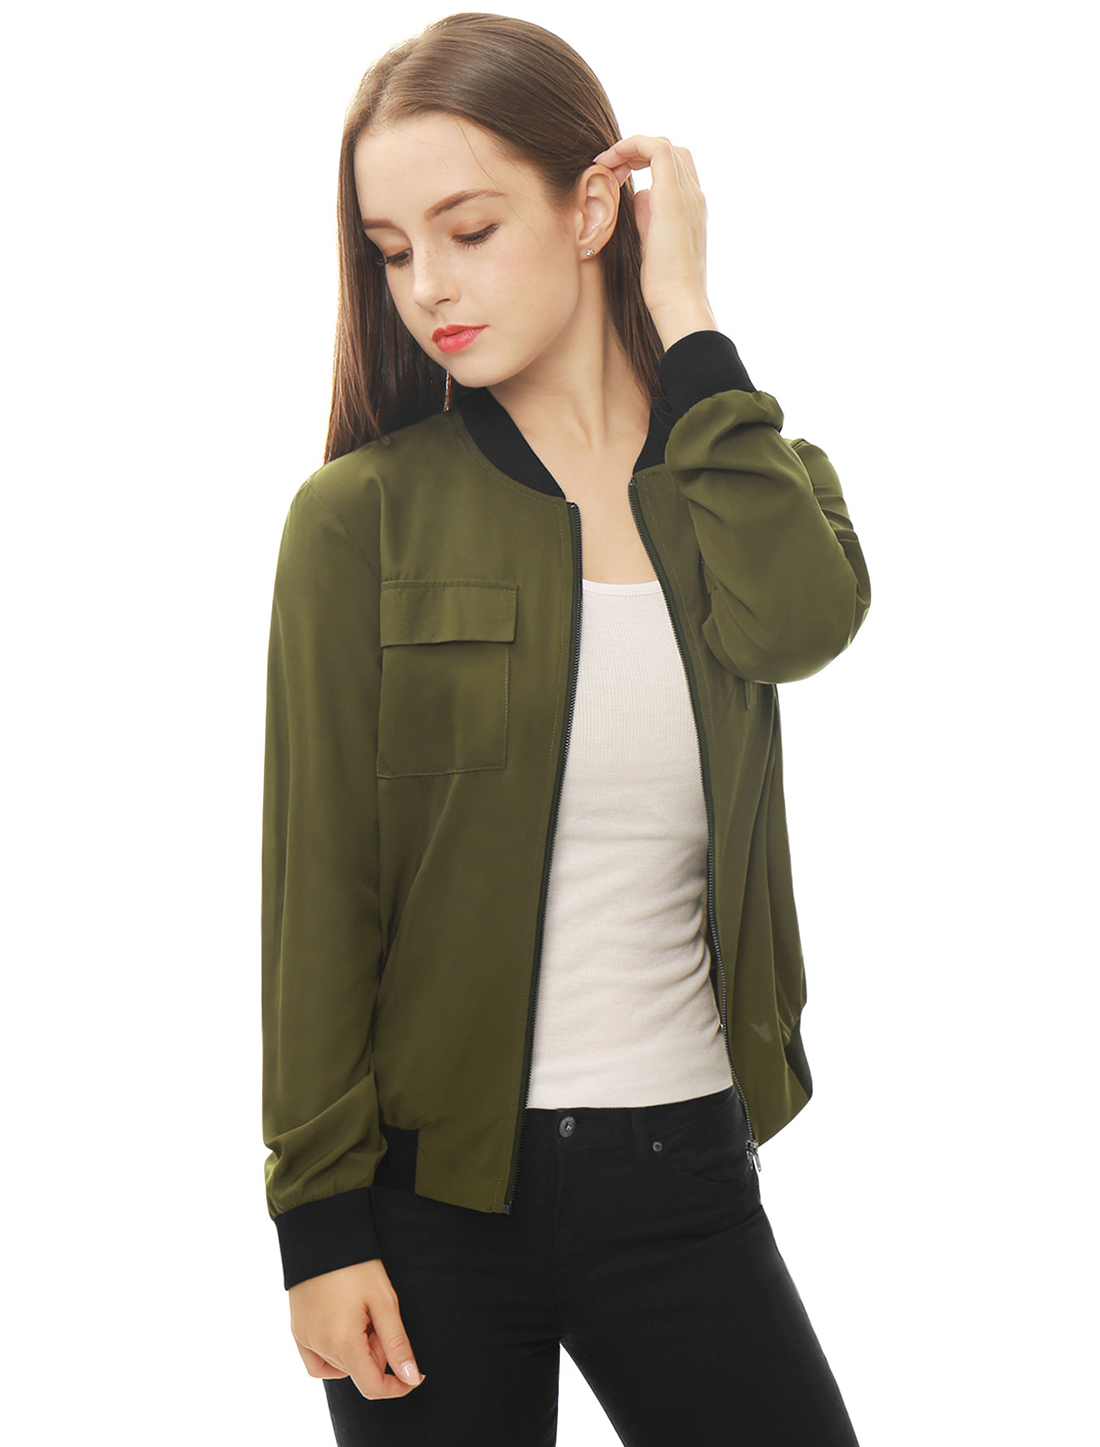 Allegra K Women Multi-Pocket Zip Fastening Front Bomber Jacket Green M